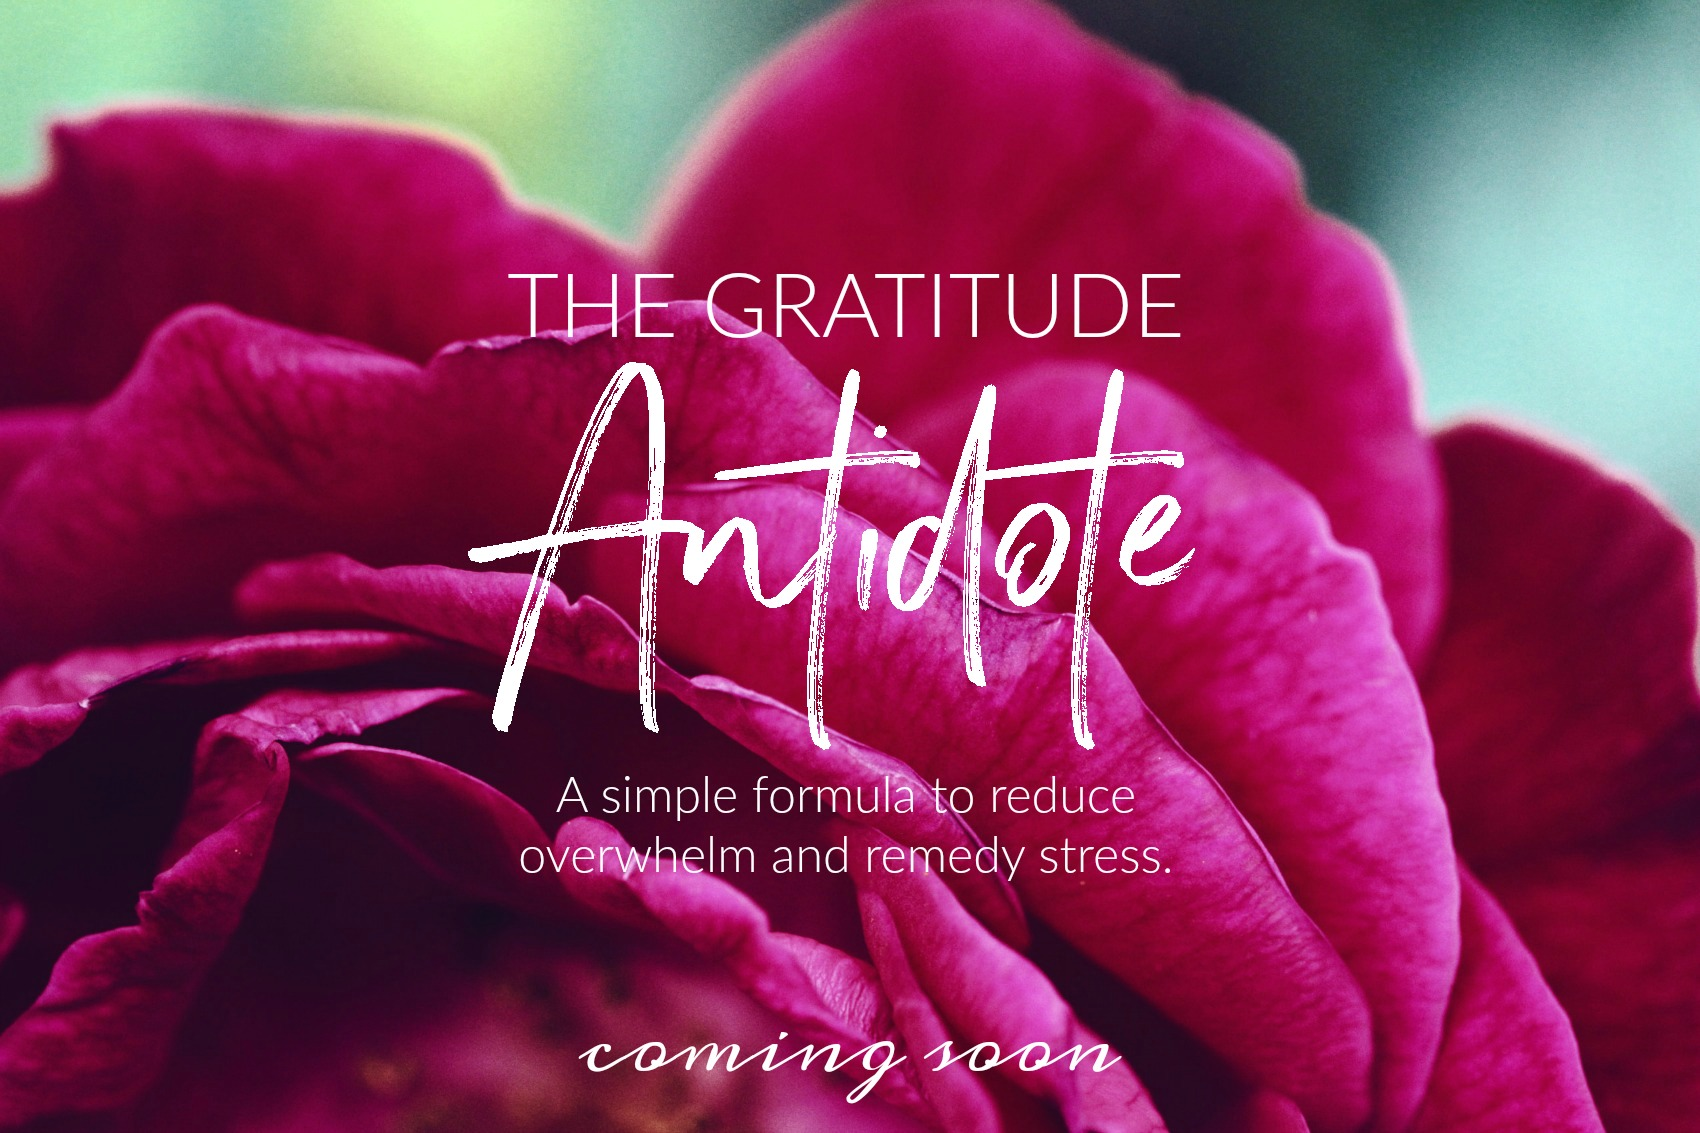 The Gratitude Antidote - coming soon to Circle of Daydreams. www.circleofdaydreams.com